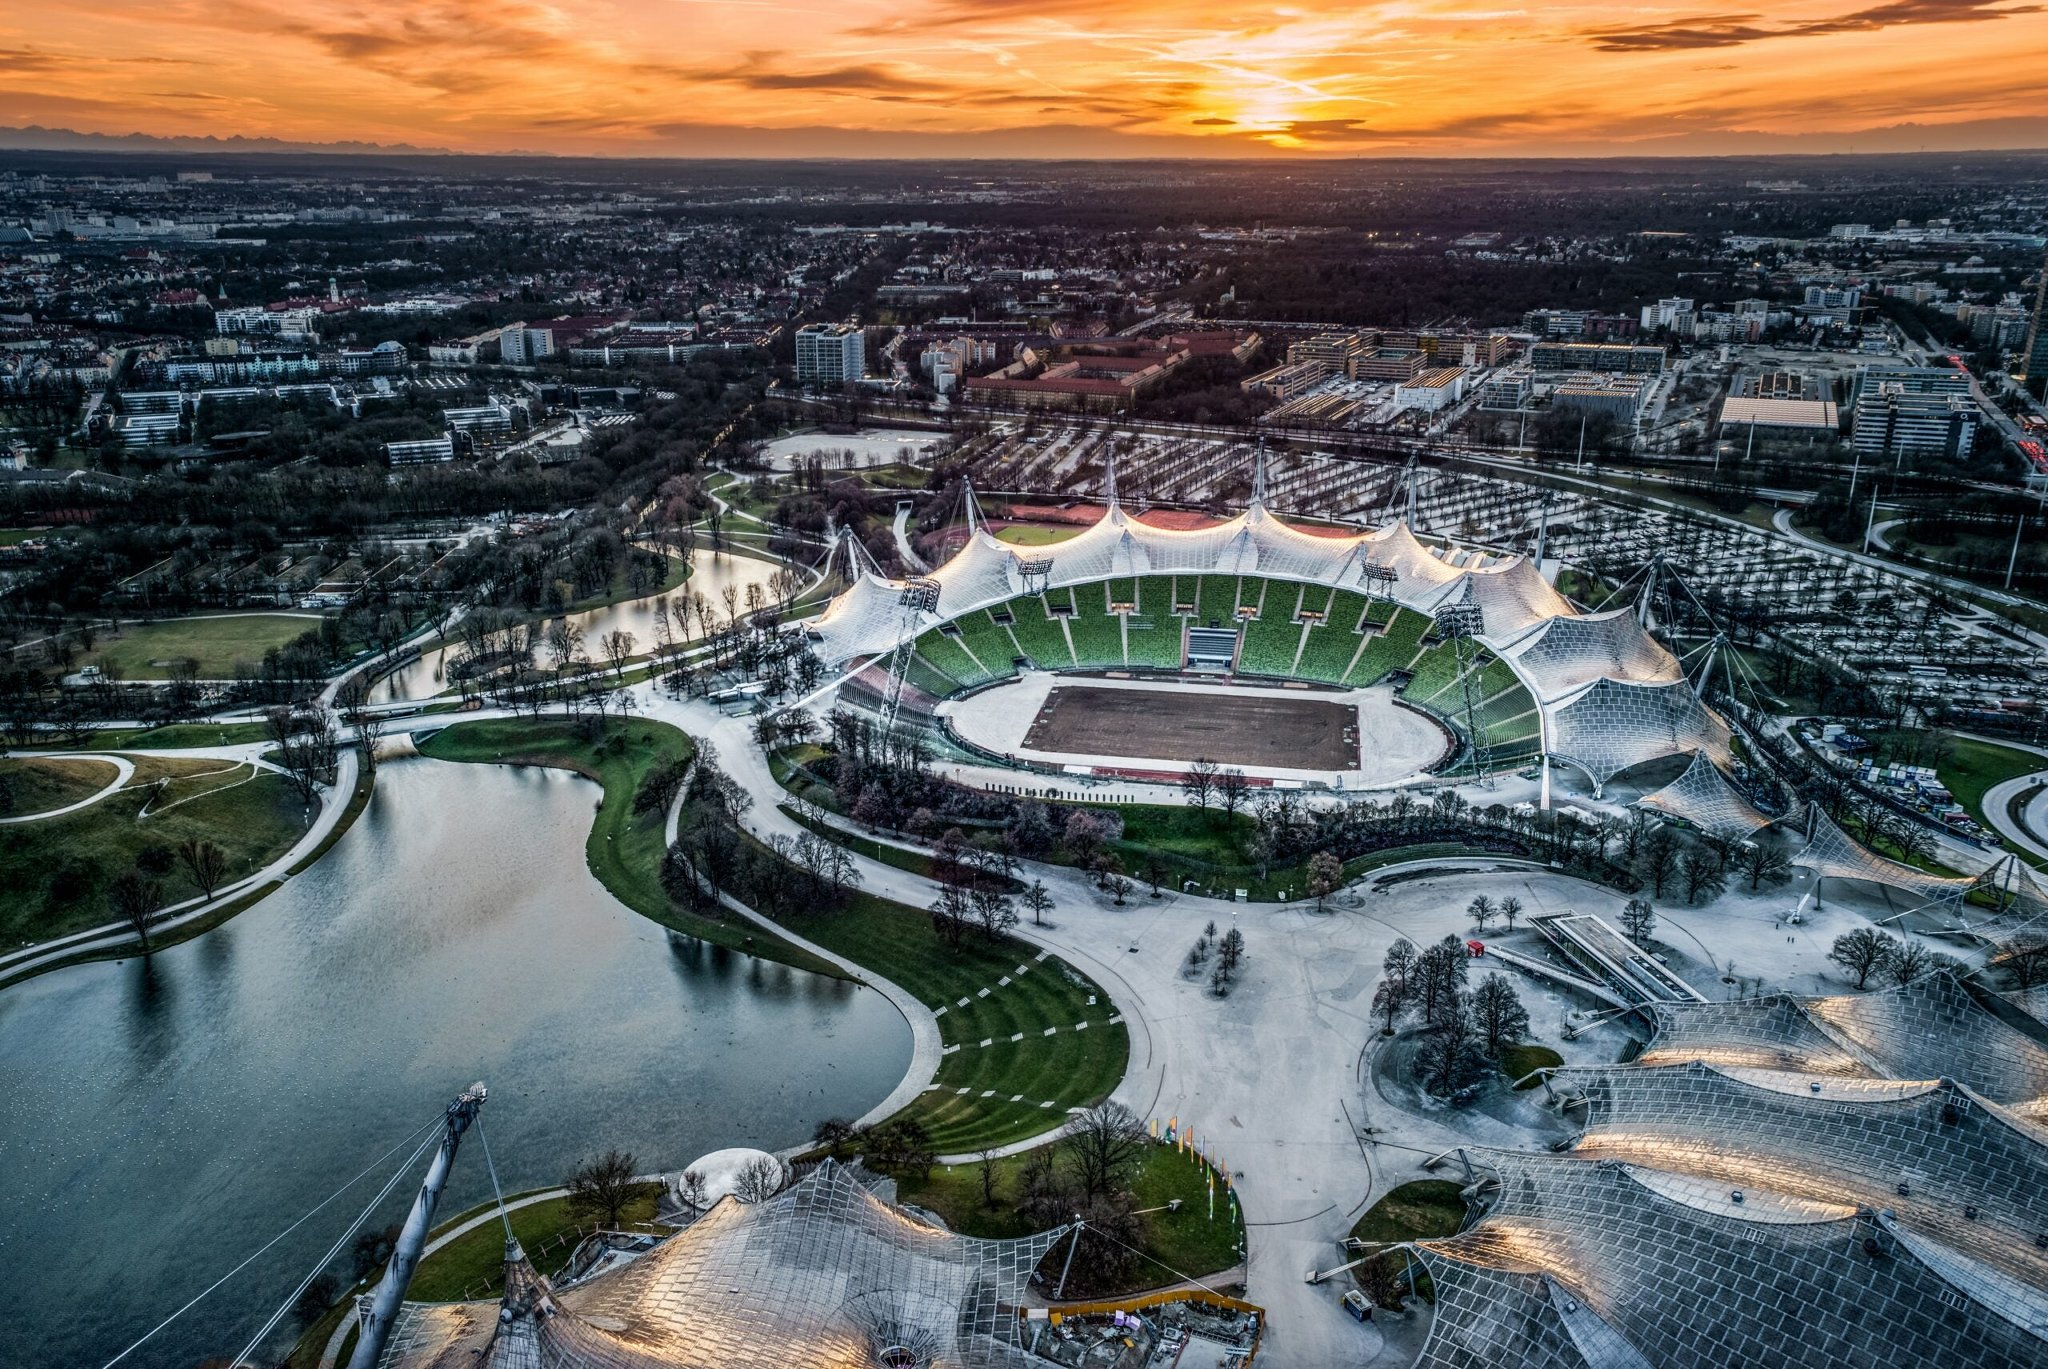 The argument for a permanent Olympic City